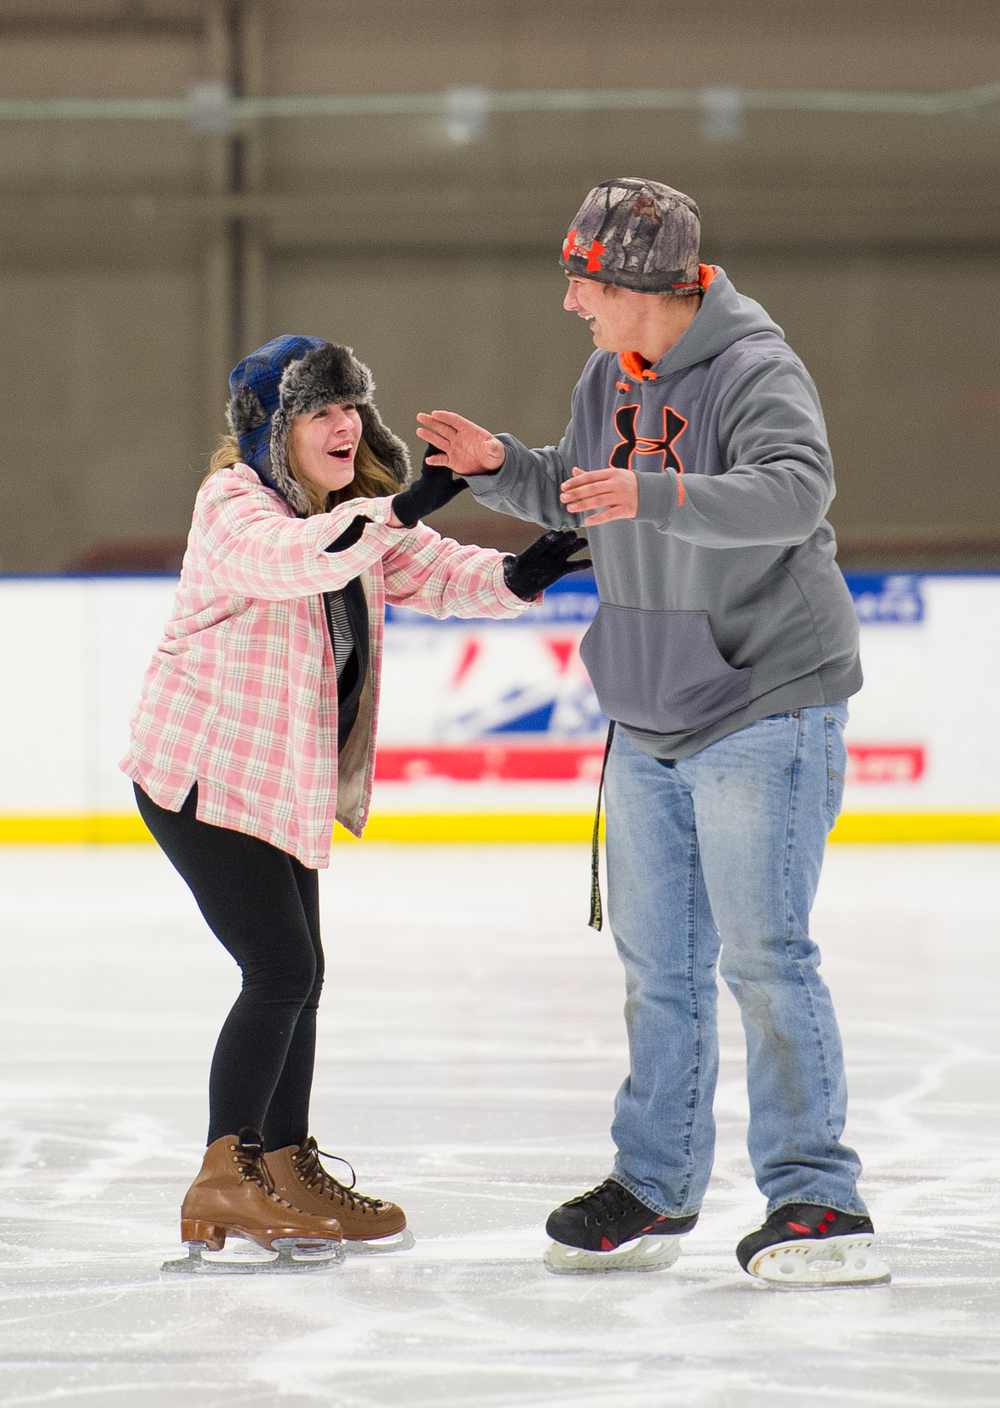 Keira Mccourt, 16, of Meigs County, Ohio, and Wyatt Hart, 17, of Coolville, Ohio, share a moment of laughter together after falling on the ice. On January 28, 2015, the two teens came to Bird Arena in Athens, Ohio to spend the evening at the recreational skate event with a group of their friends.